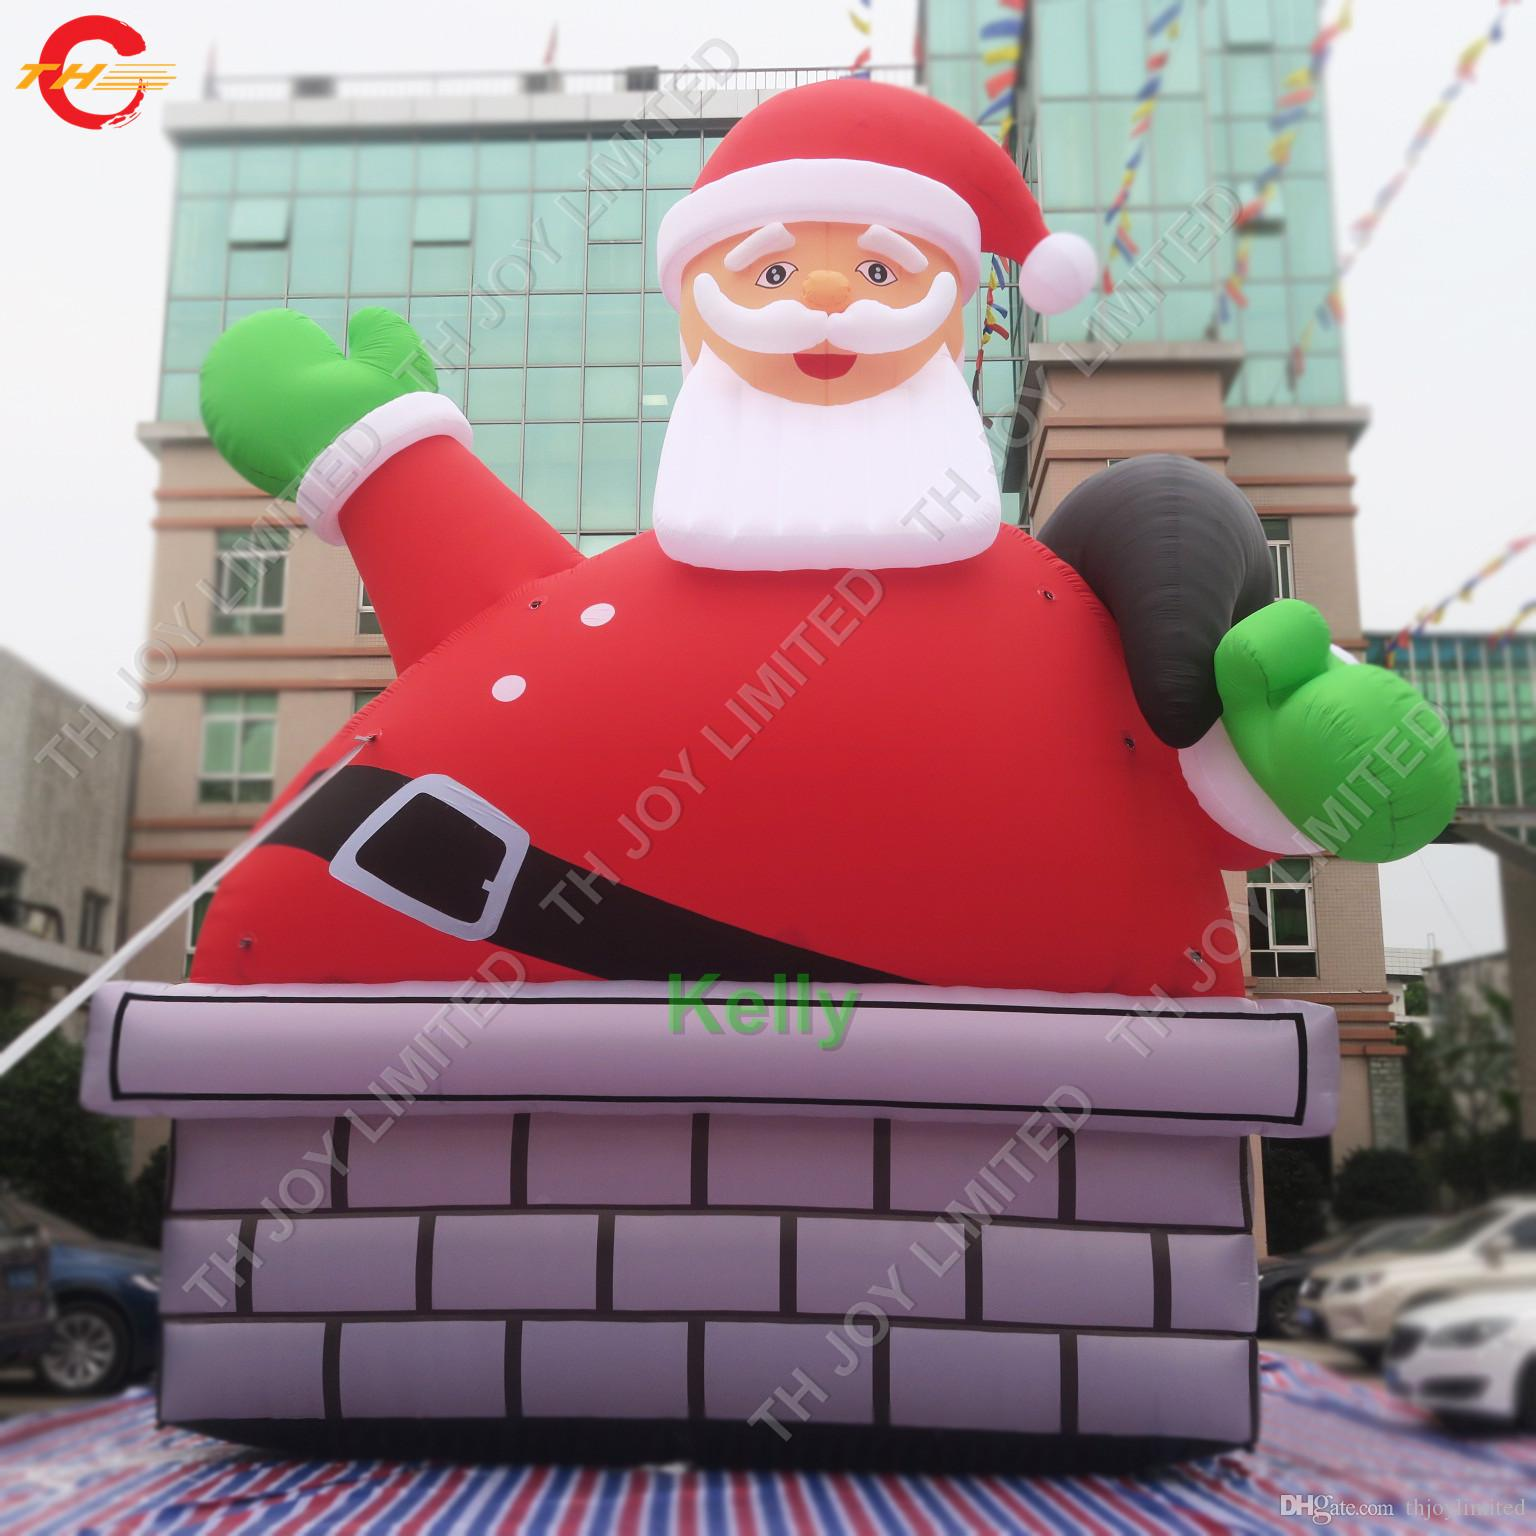 2020 9m 30ft Large Outdoor Christmas Decorations Inflatable Santa Claus For Sale Giant Inflatable Standing Santa Claus Figure From Thjoylimited 904 53 Dhgate Com